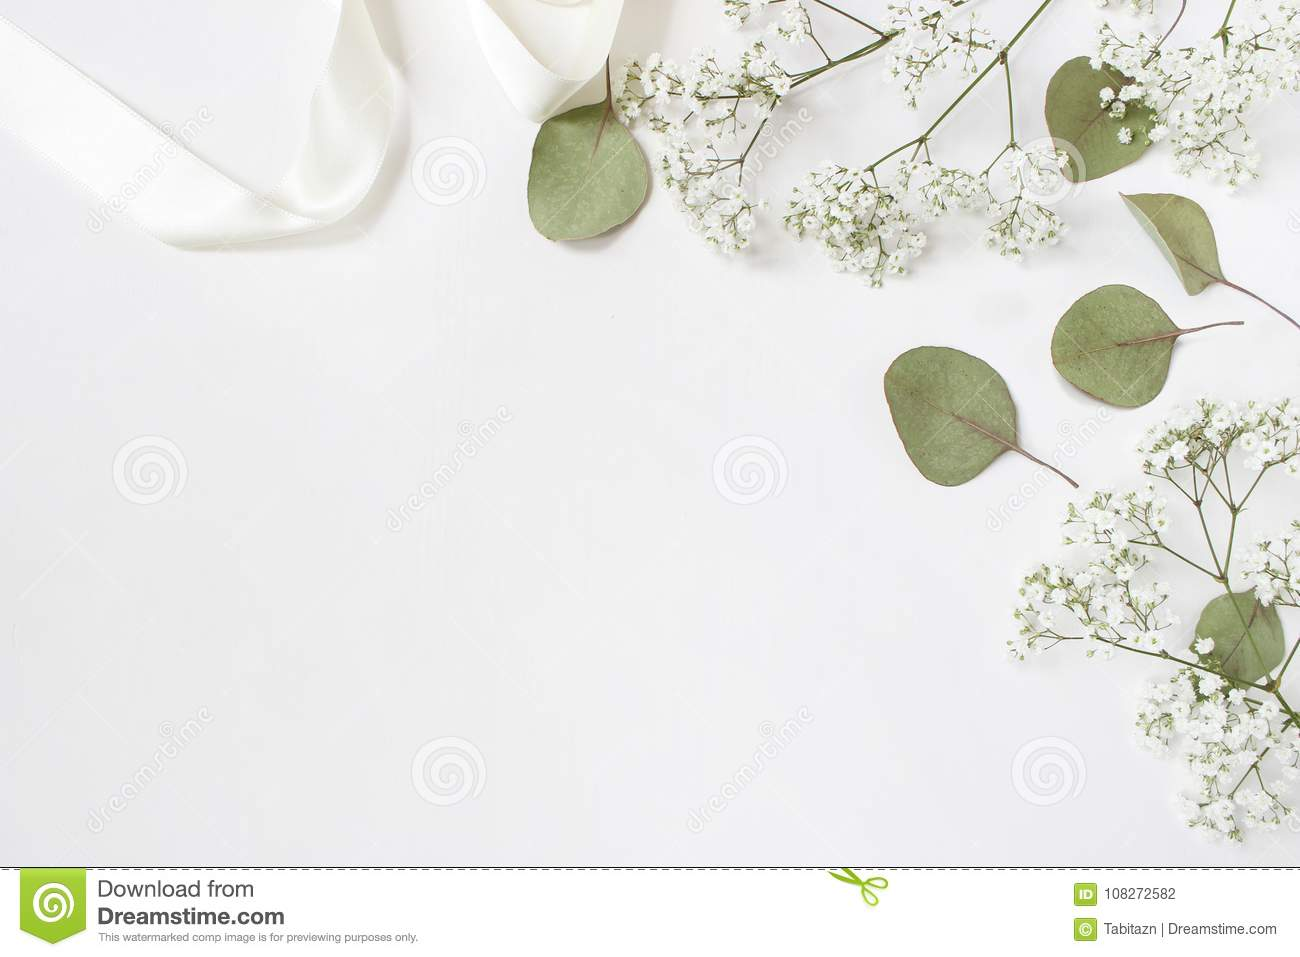 styled stock photo feminine wedding desktop mockup baby s breath gypsophila flowers dry green eucalyptus leaves satin ribbon 108272582